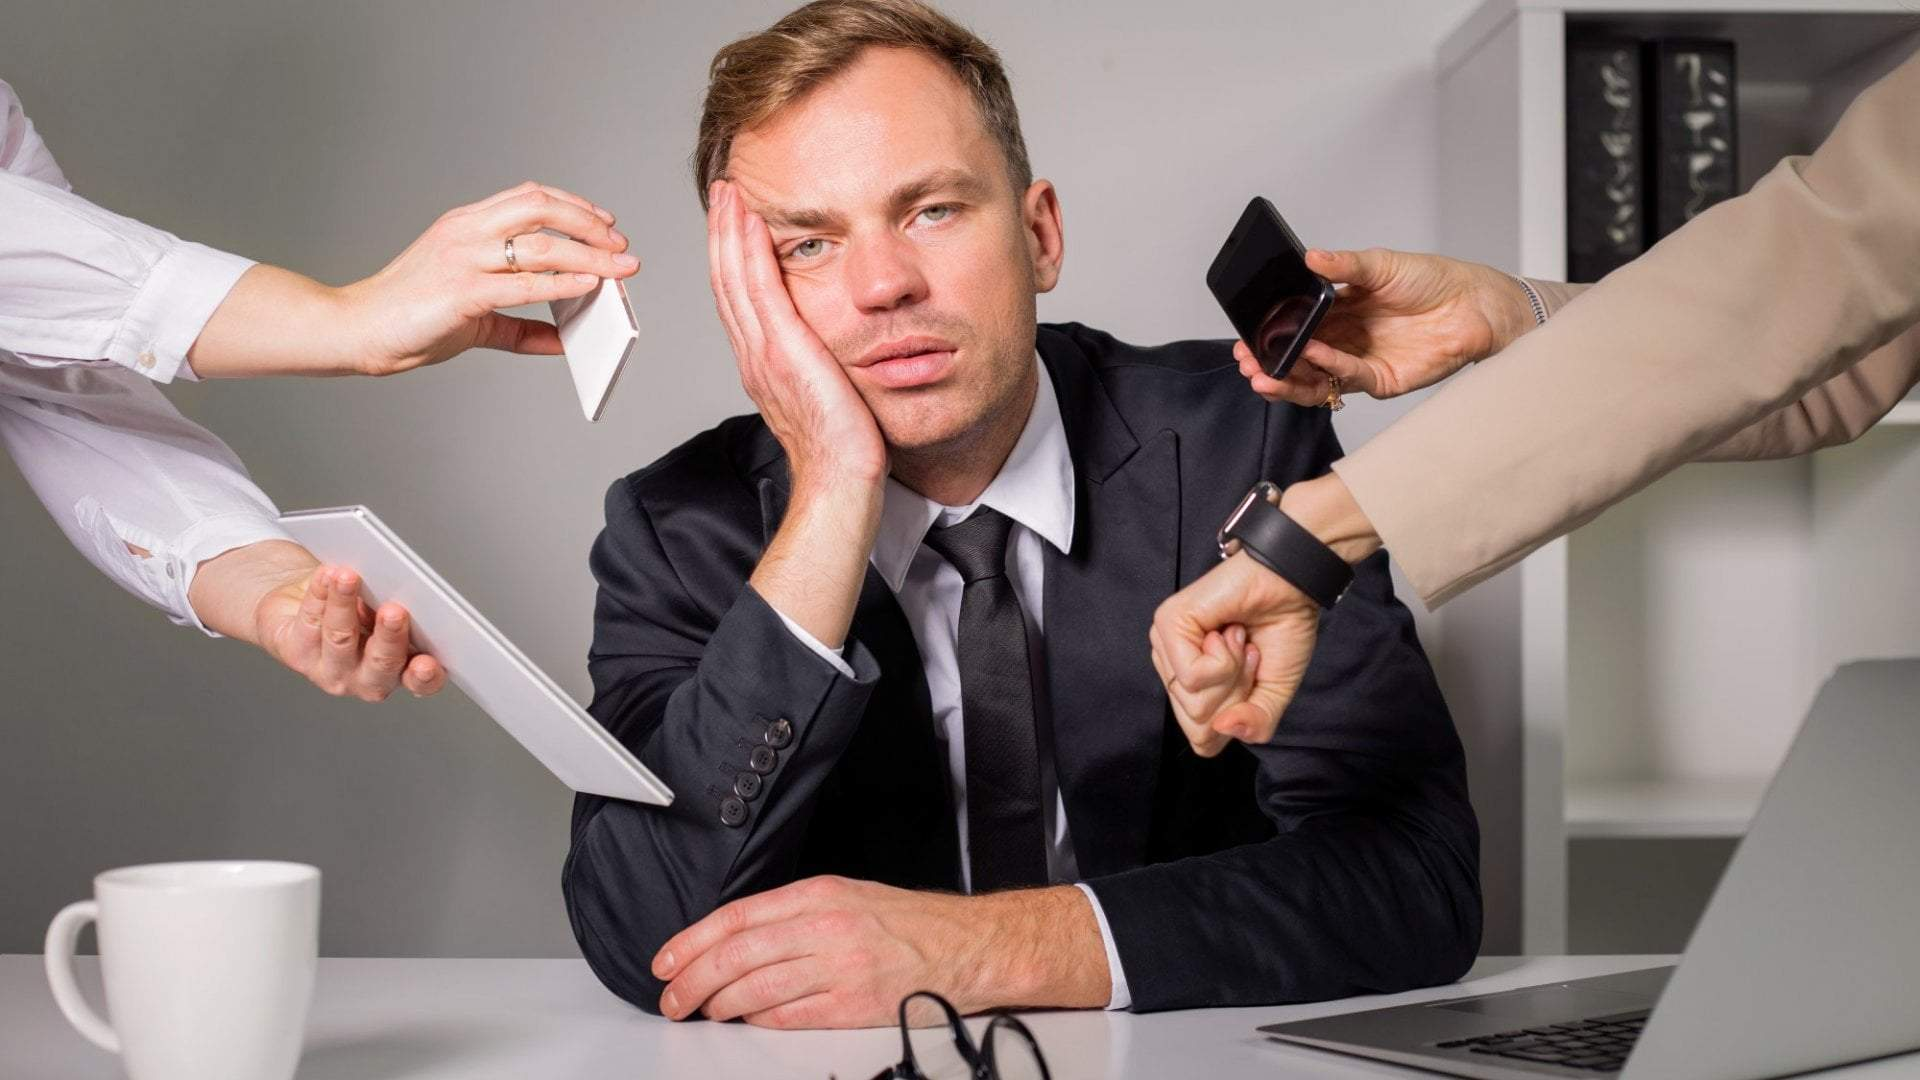 The Stress Of Business